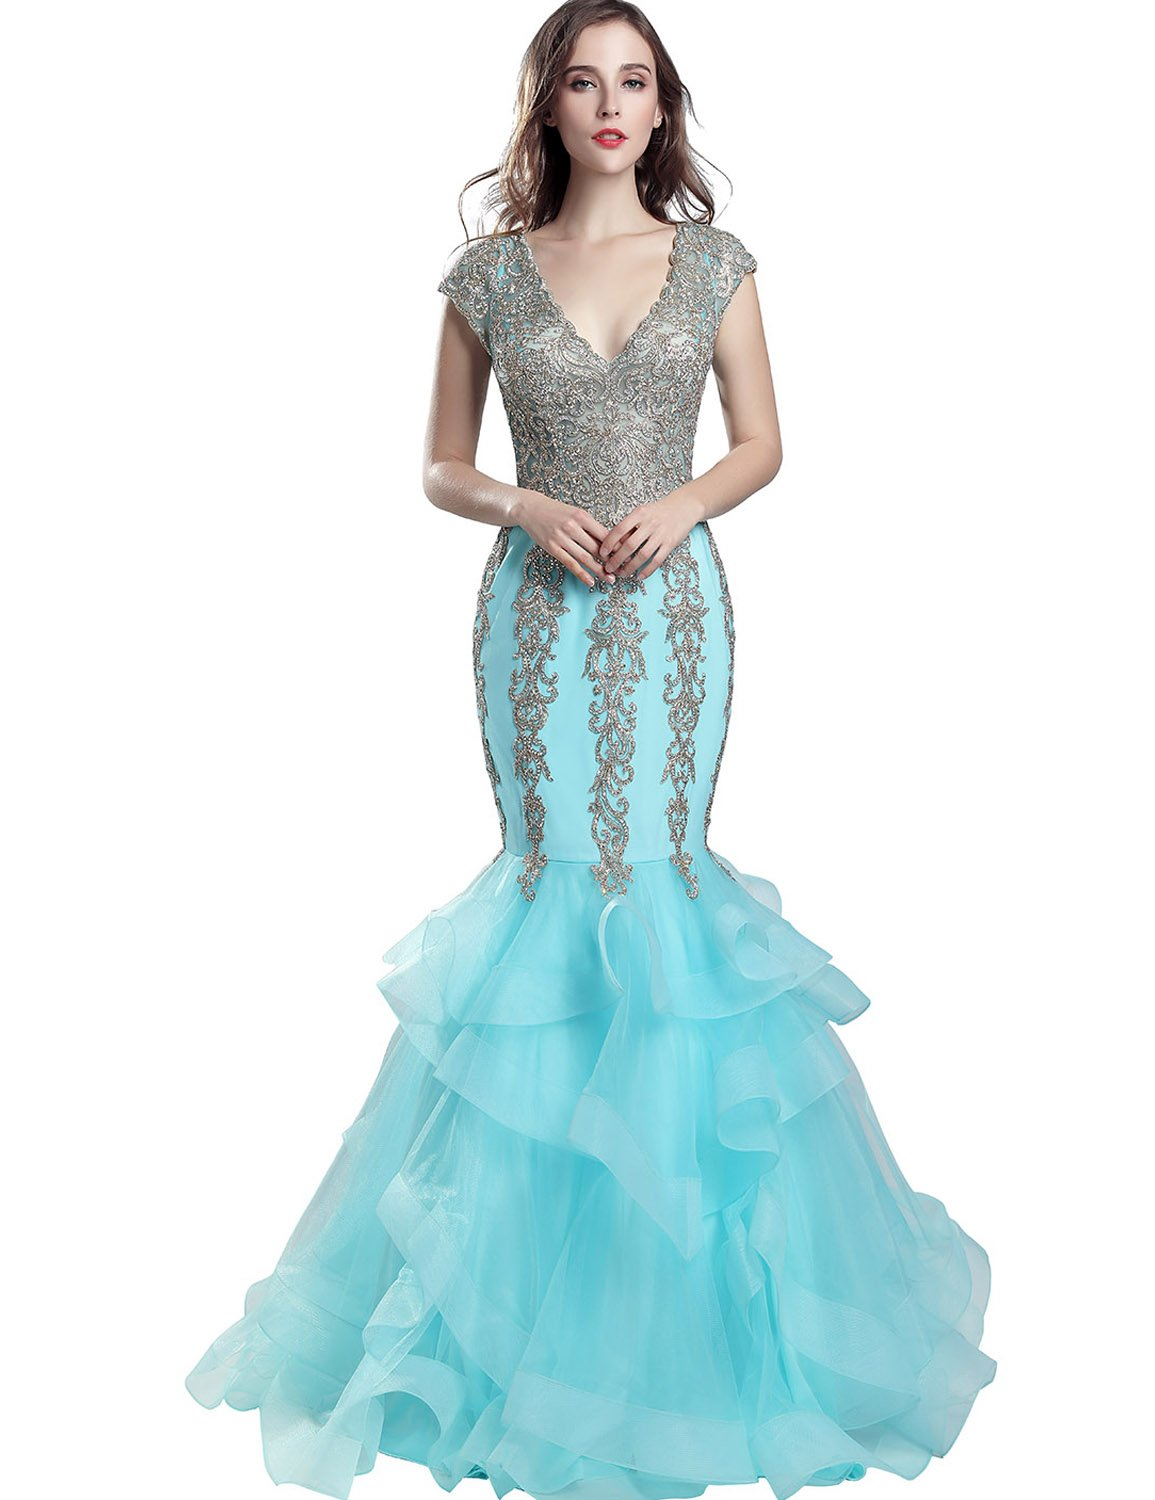 Sarahbridal Women's V-Neck and V-Back Prom Evening Dresses Sequin Formal Mermaid Pageants Party Gowns